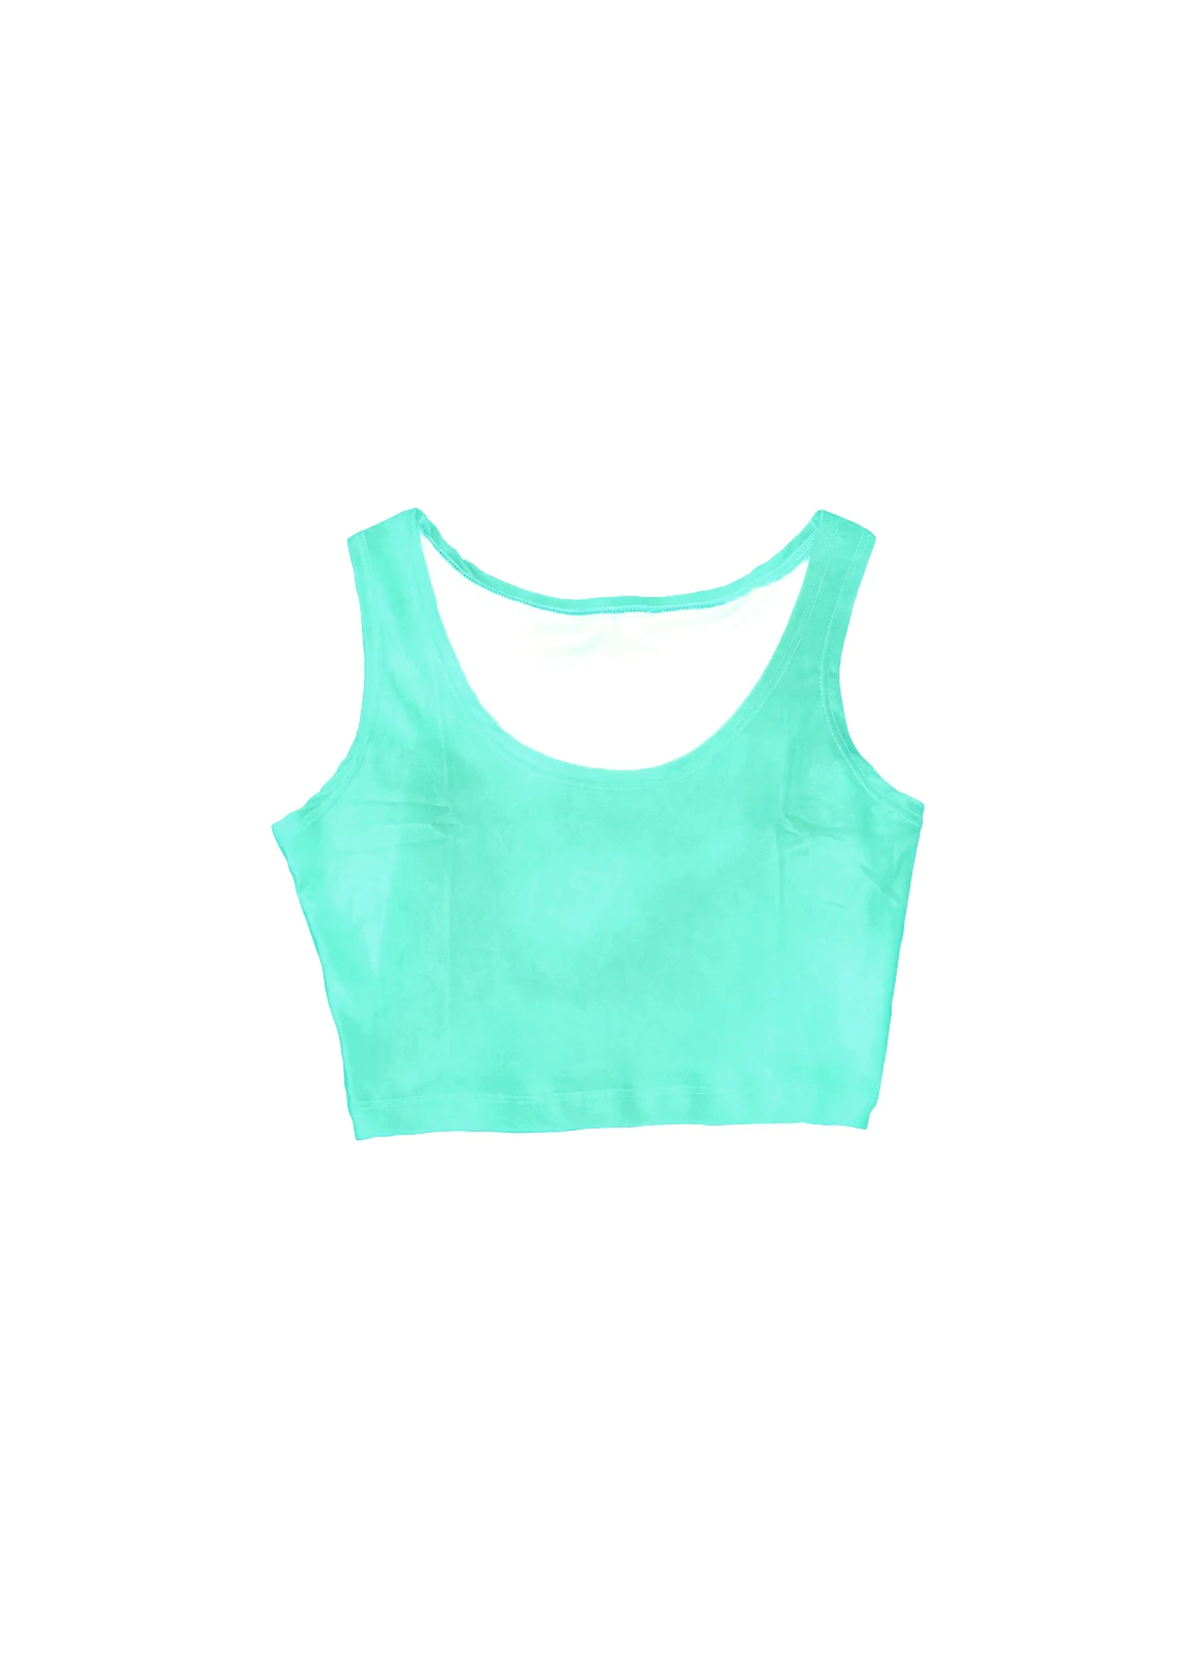 velvet crop top in mint